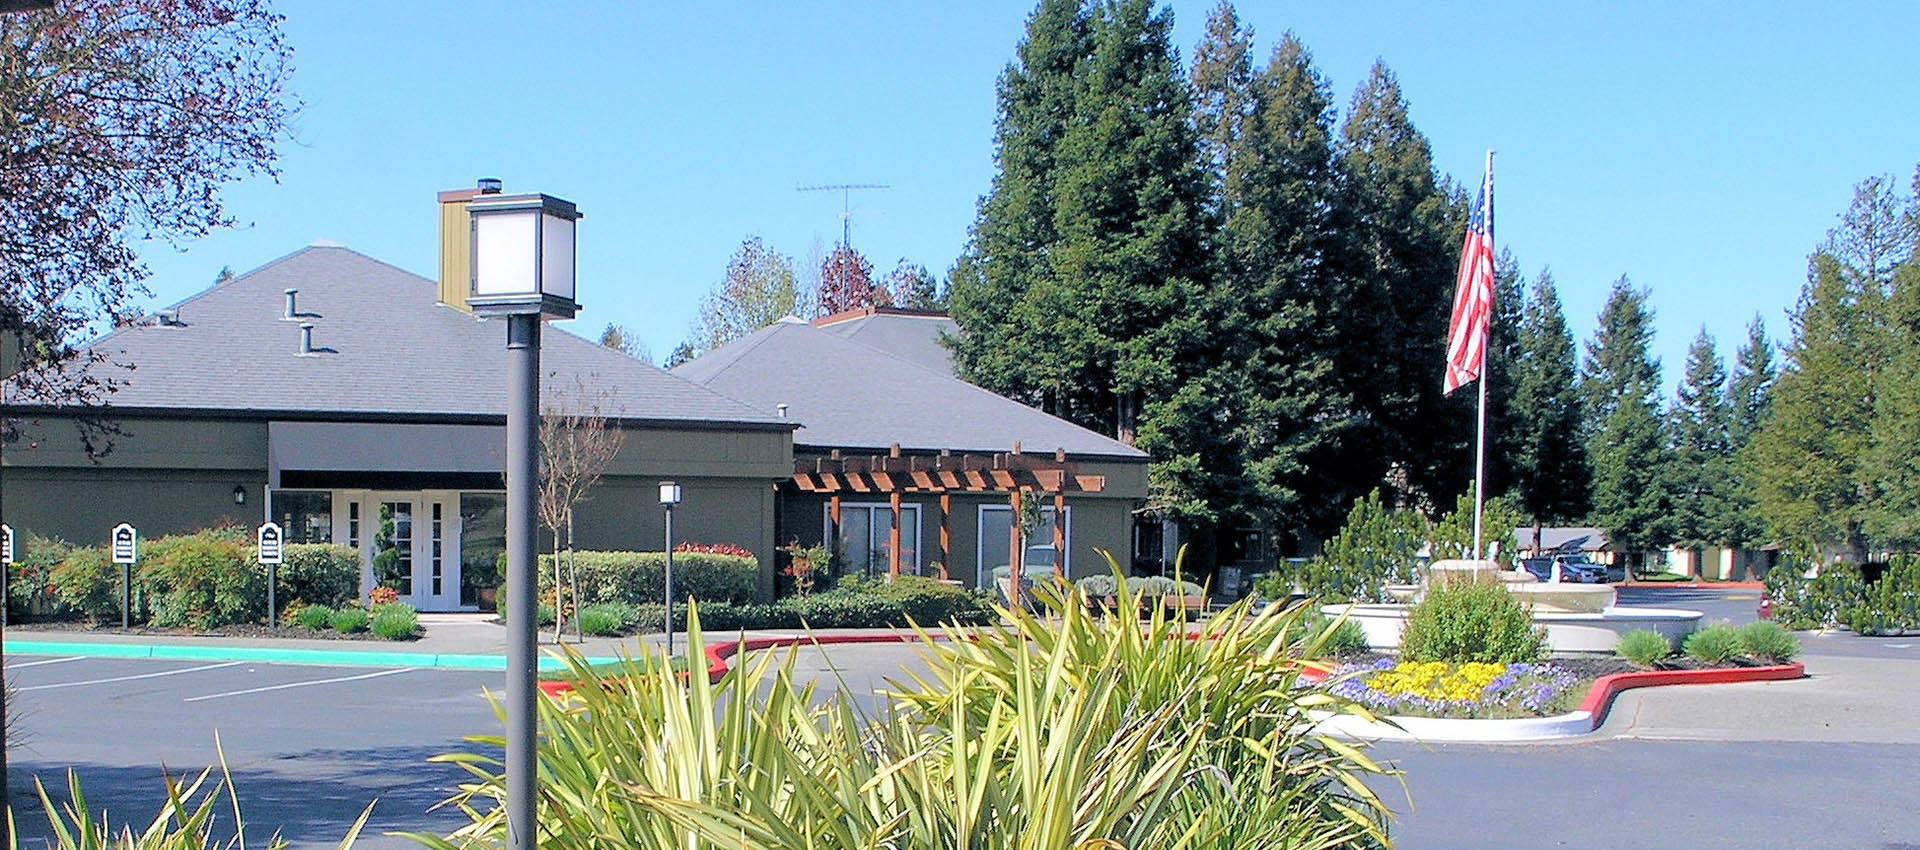 Leasing office at apartments in Rohnert Park, CA